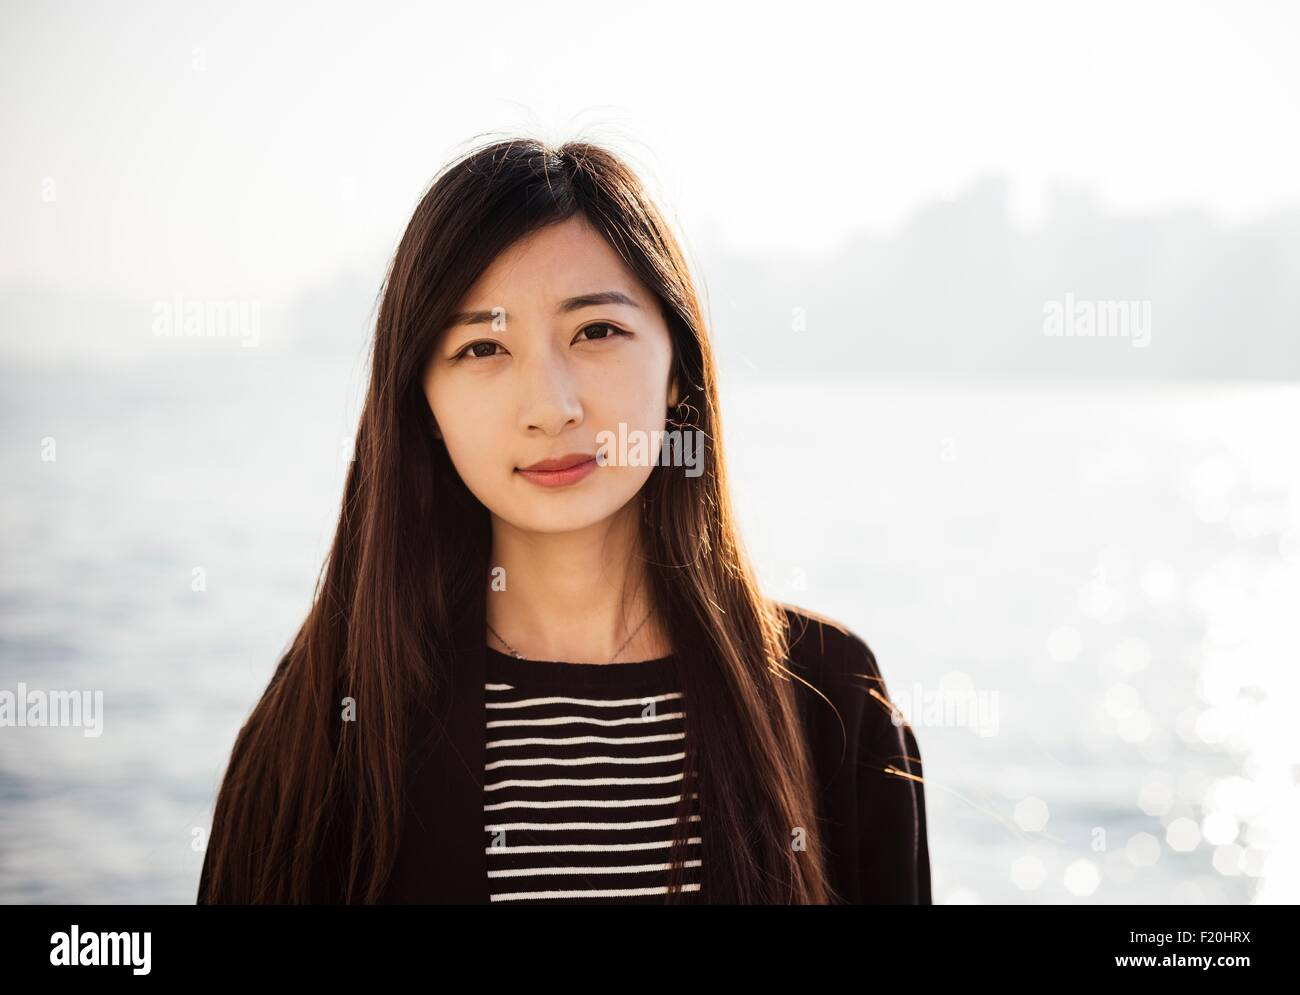 Portrait of young woman with long brunette hair wearing striped top looking at camera - Stock Image